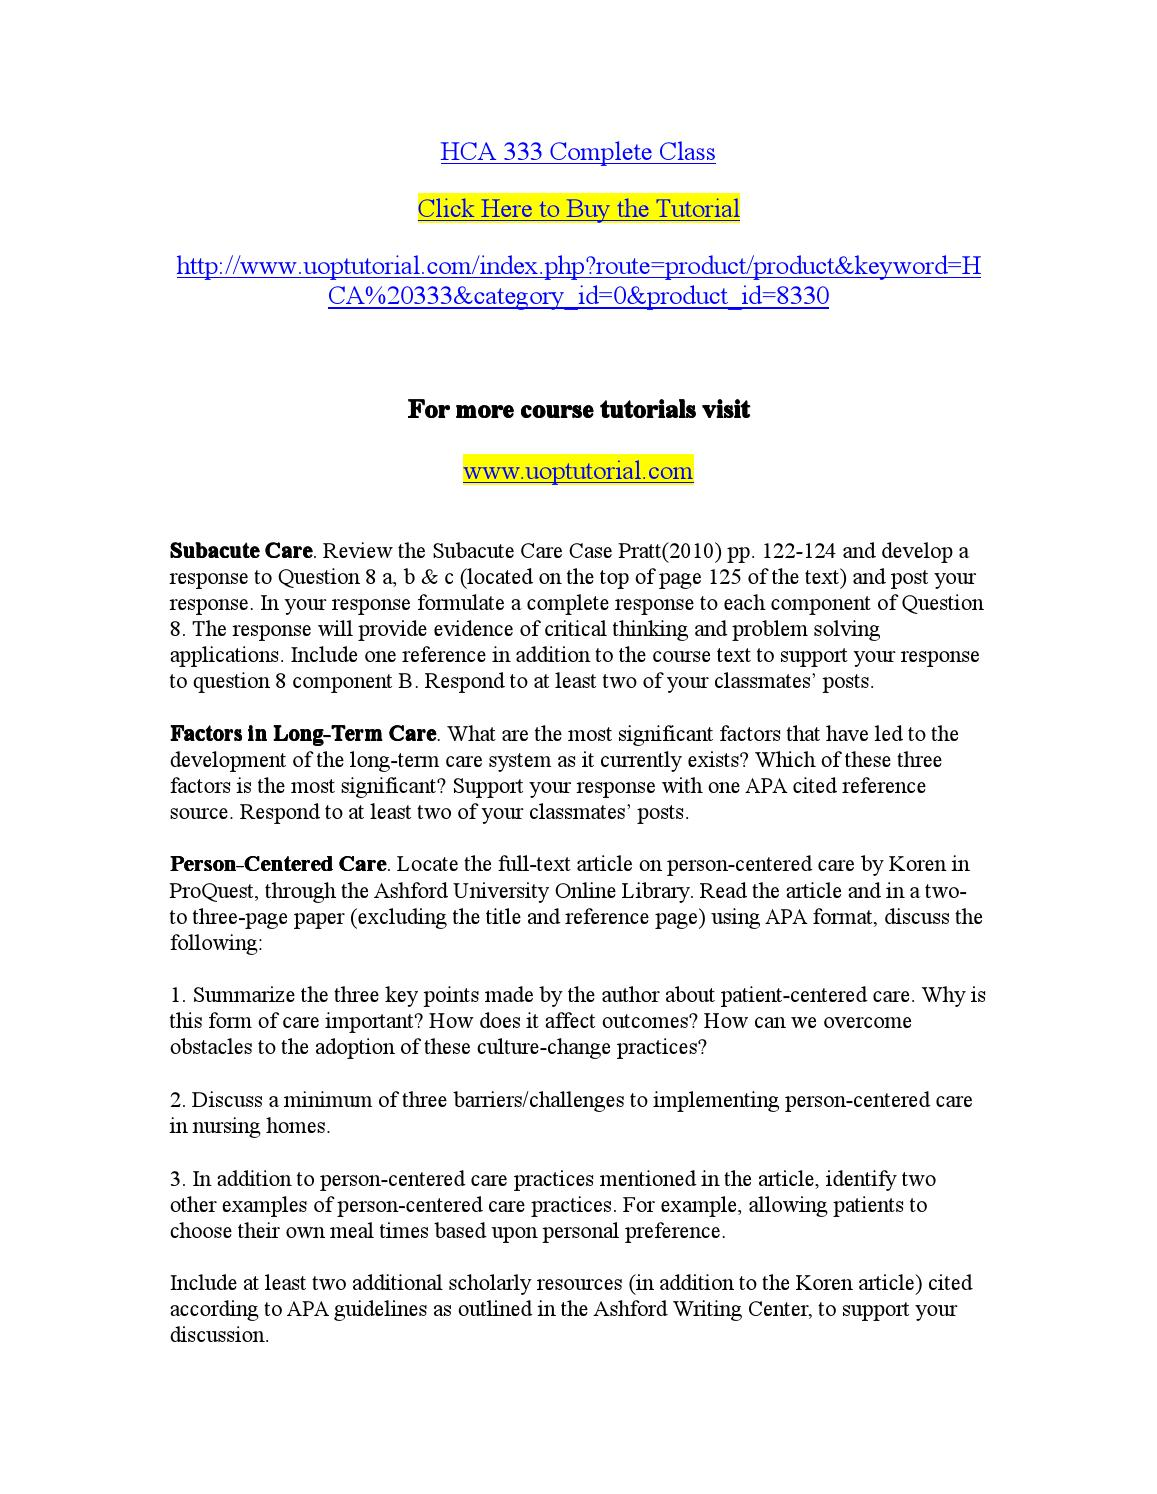 Hca 333 Complete Class Subacute Care Review The Subacute Care Case